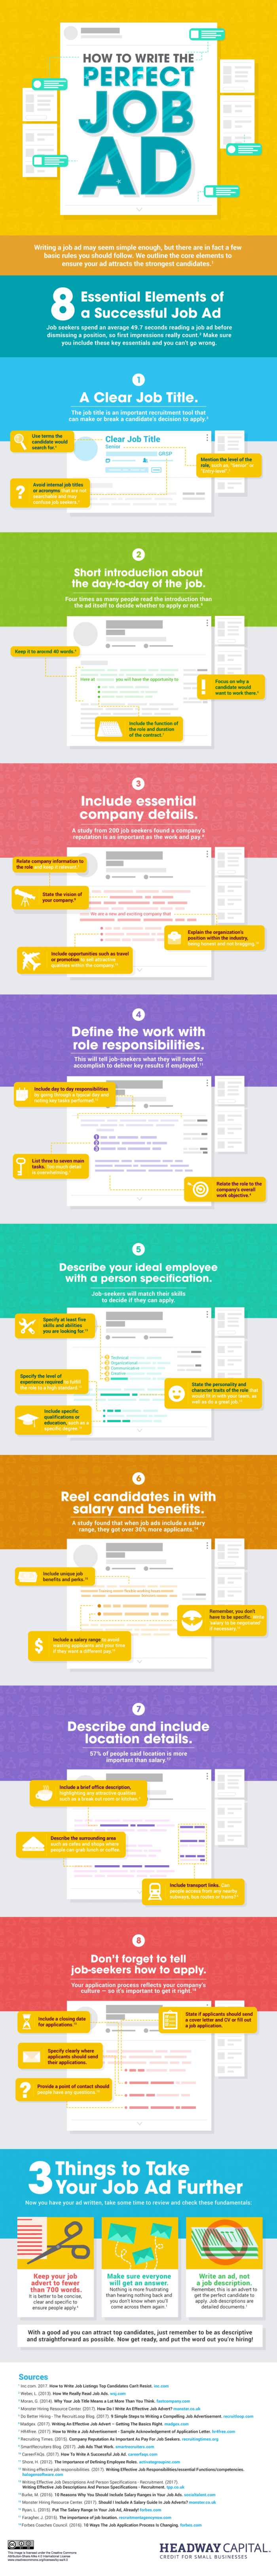 Headway Capital infographic, hr